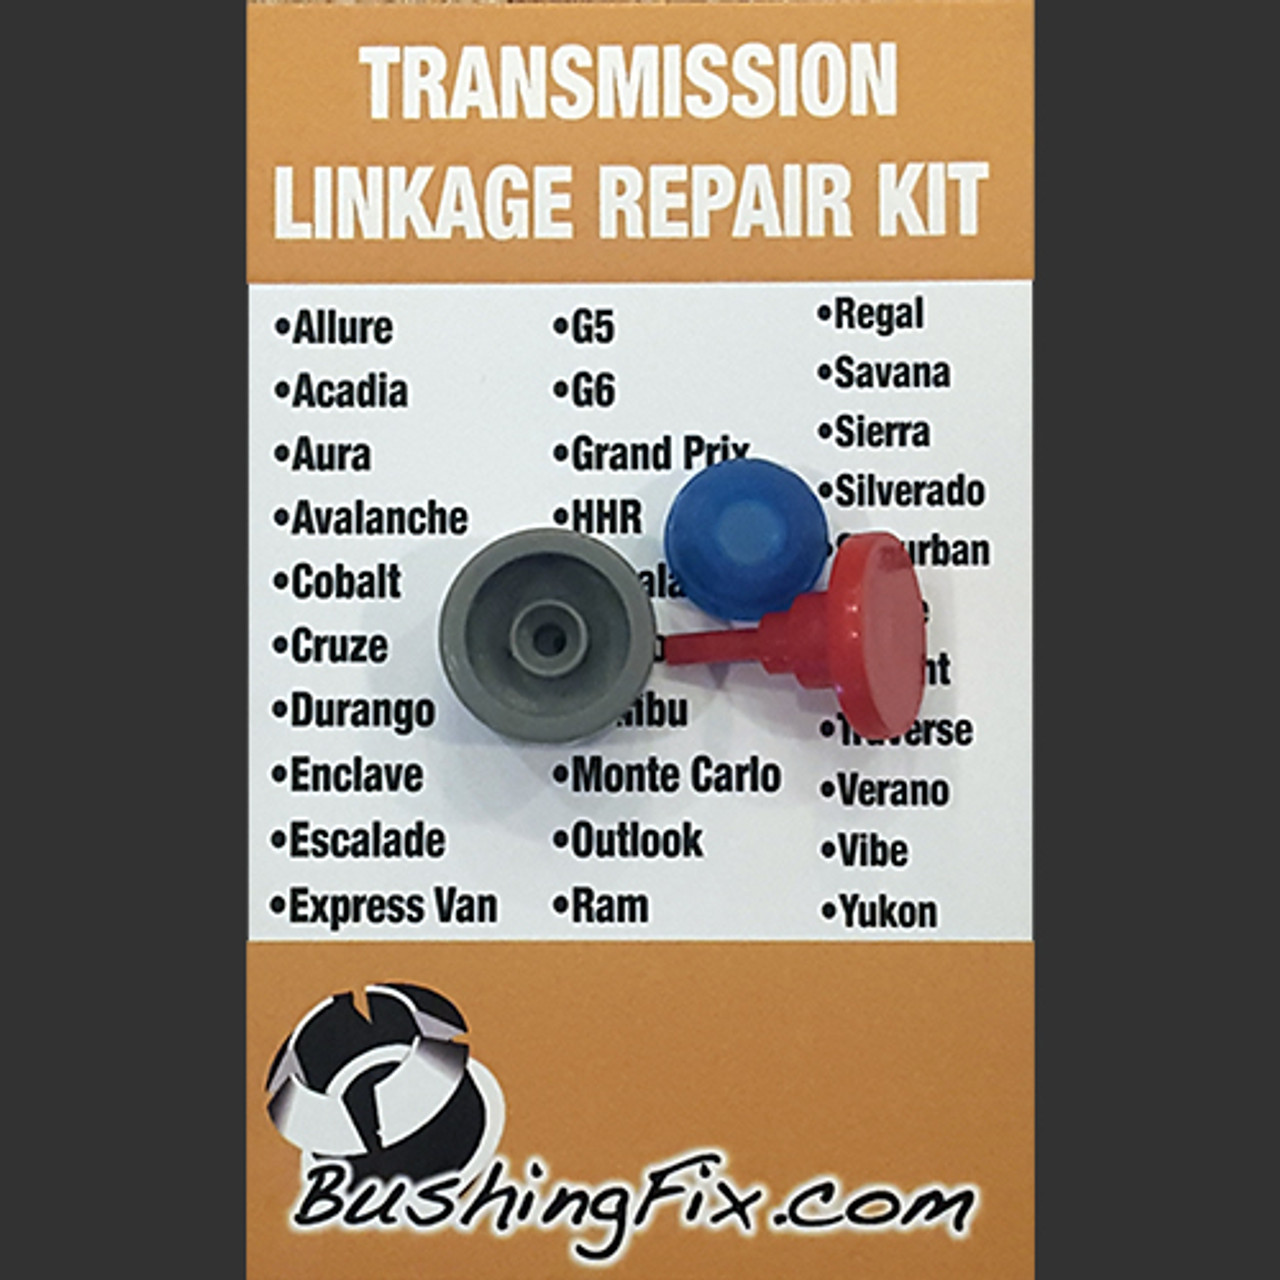 Chevrolet Suburban 2500 transmission shift selector cable repaired using the replacement bushing kit